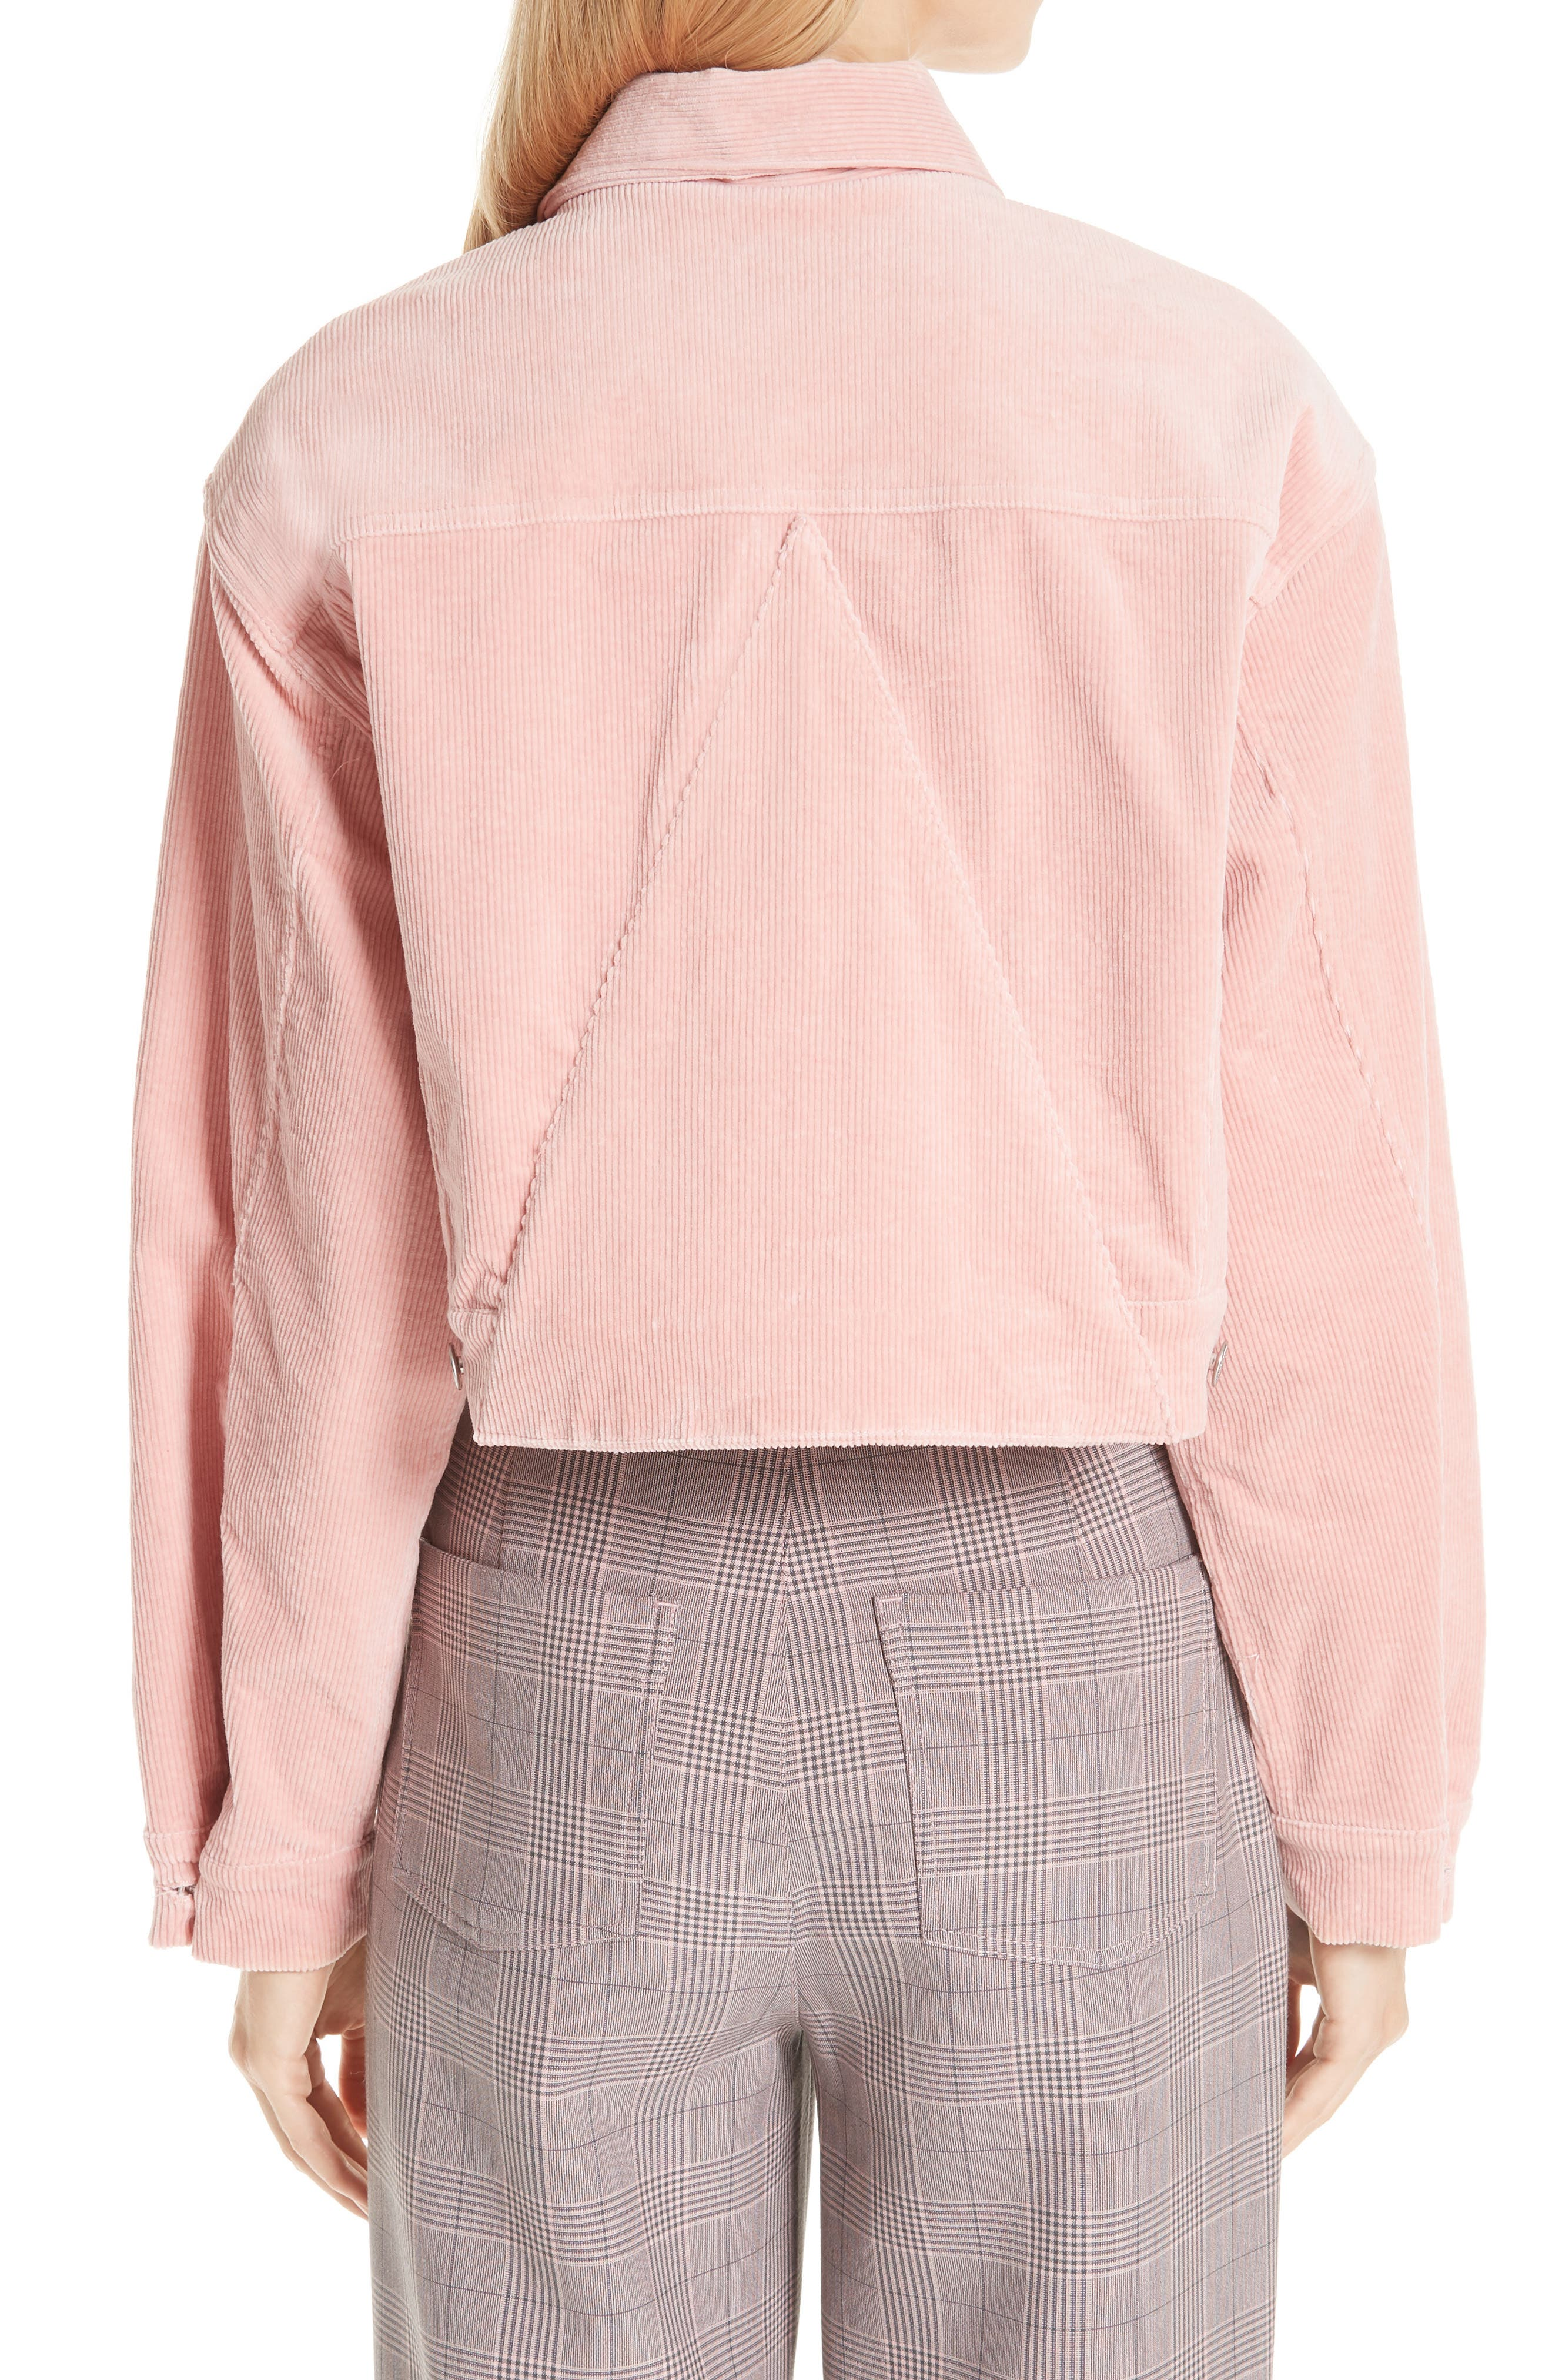 Stretch Corduroy Jacket,                             Alternate thumbnail 2, color,                             SILVER PINK 499